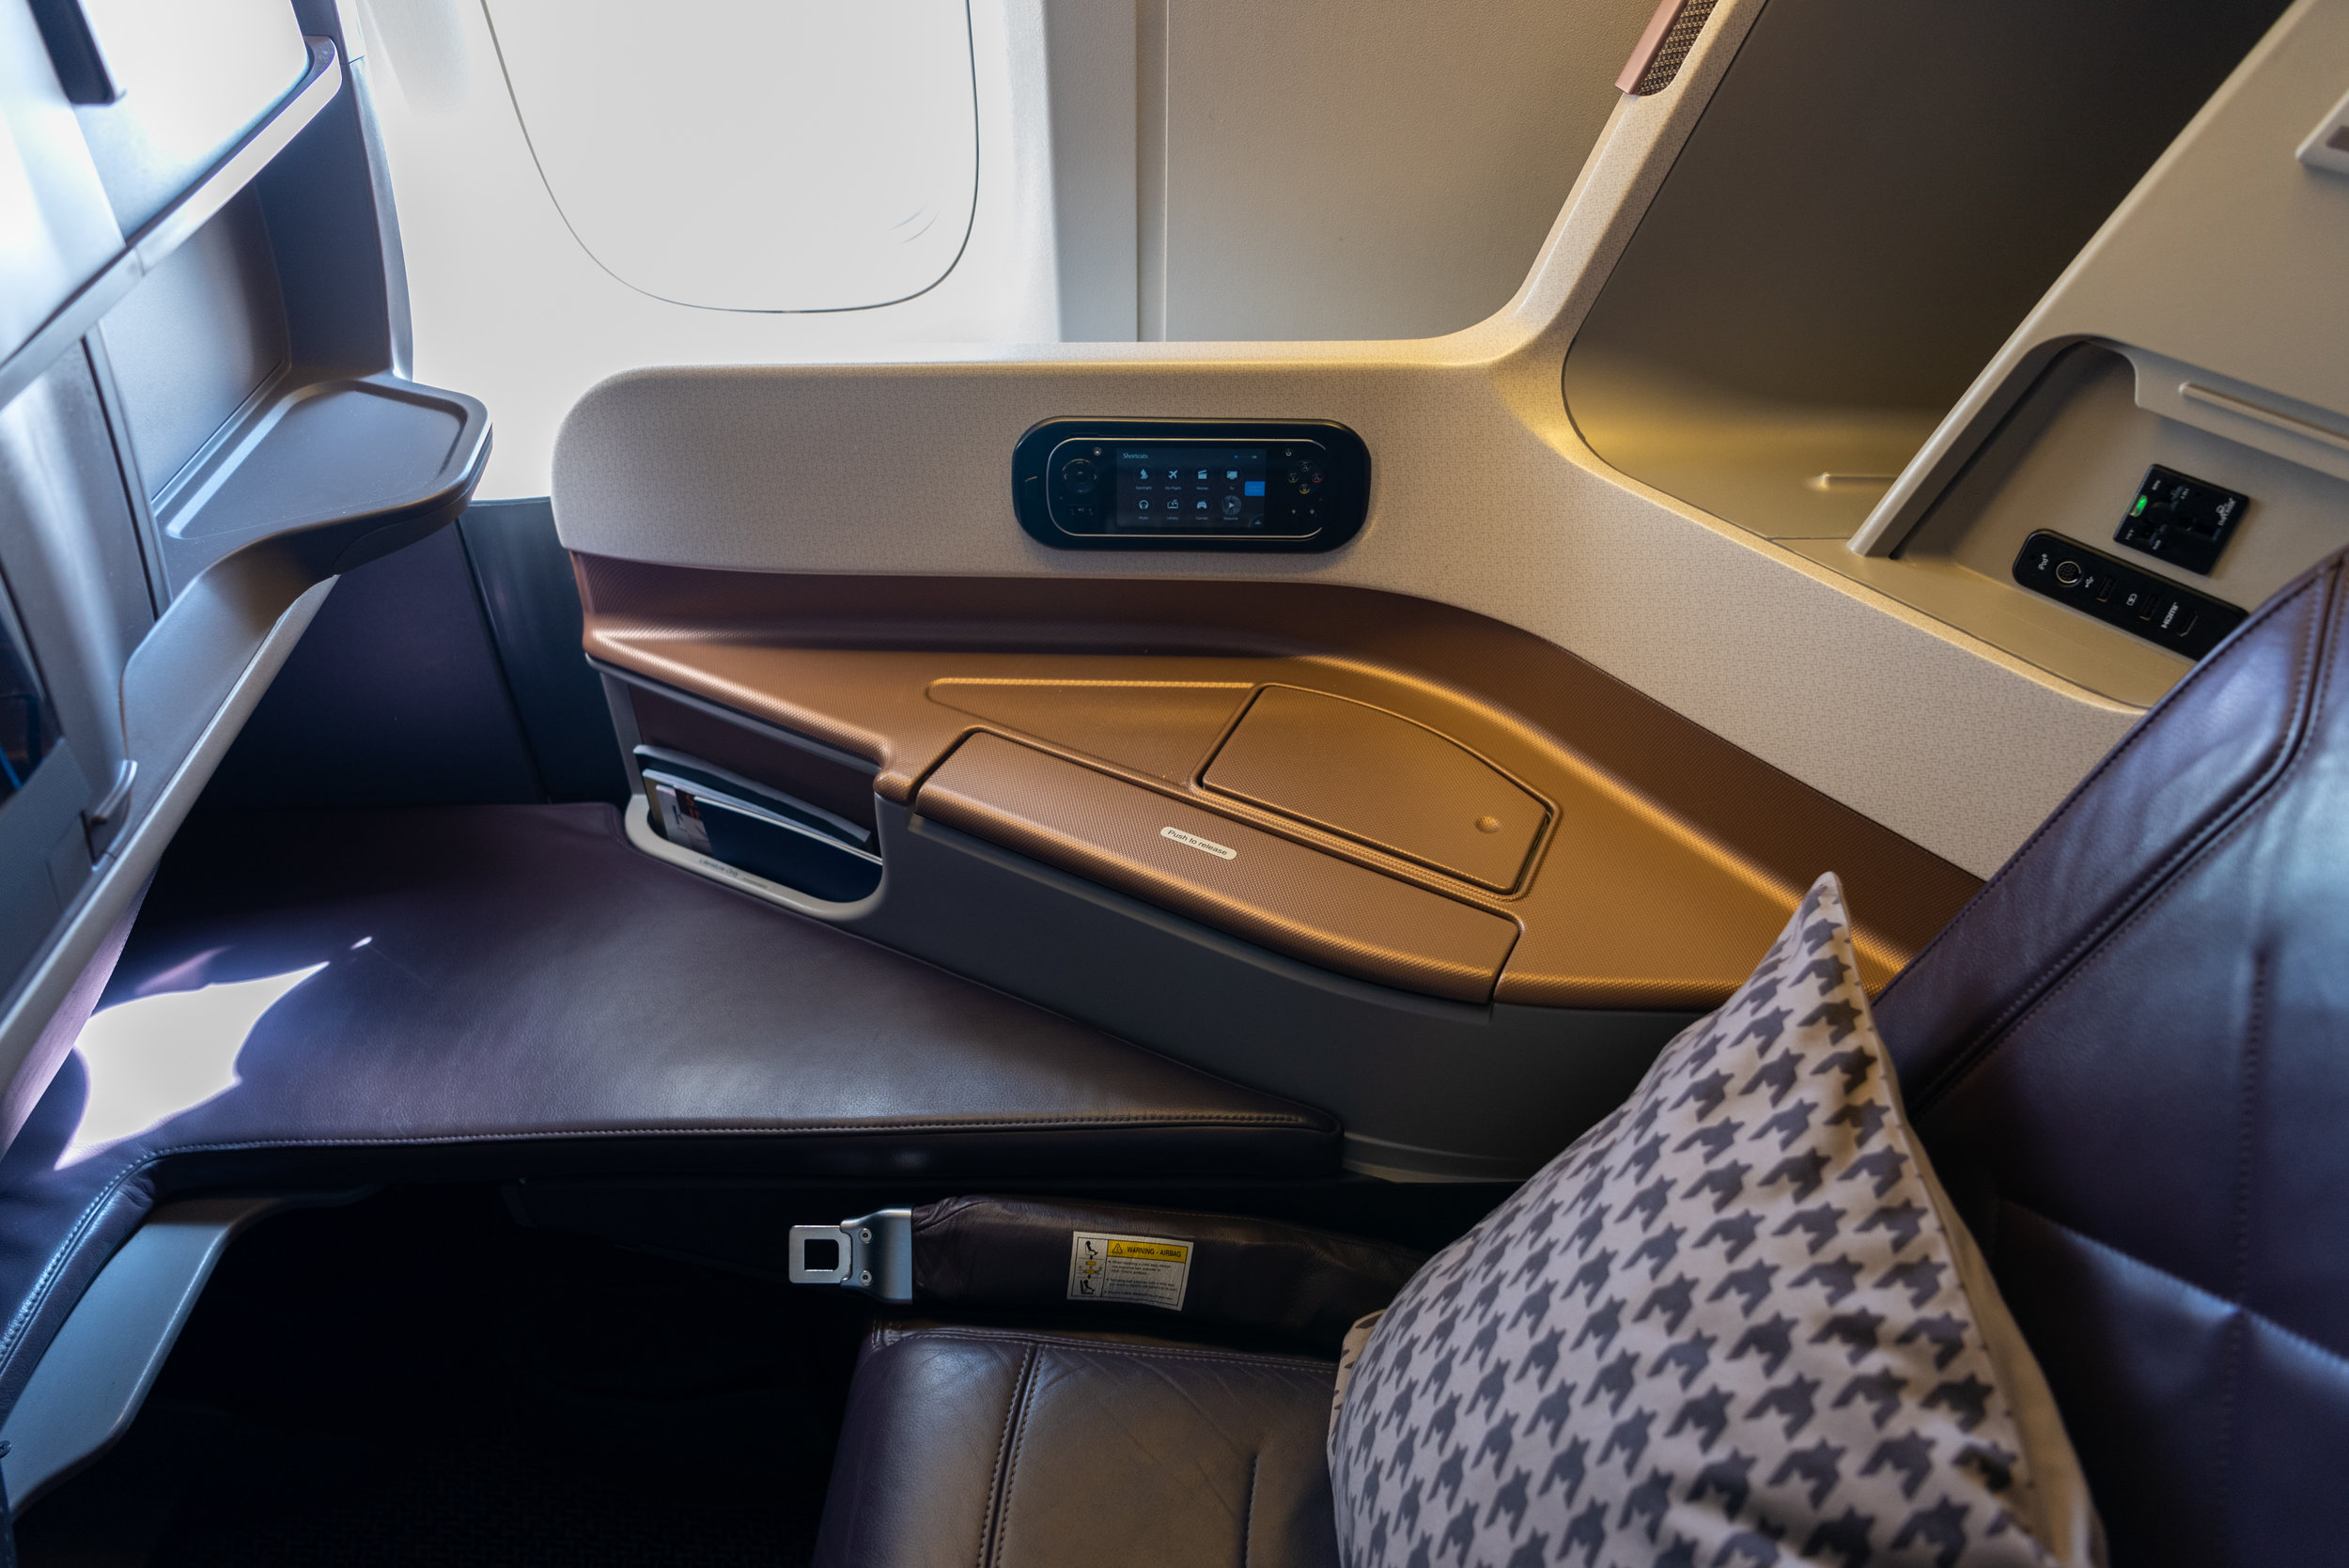 Seat 14K  Singapore Airlines Business Class SQ828 777-300ER - SIN to PVG